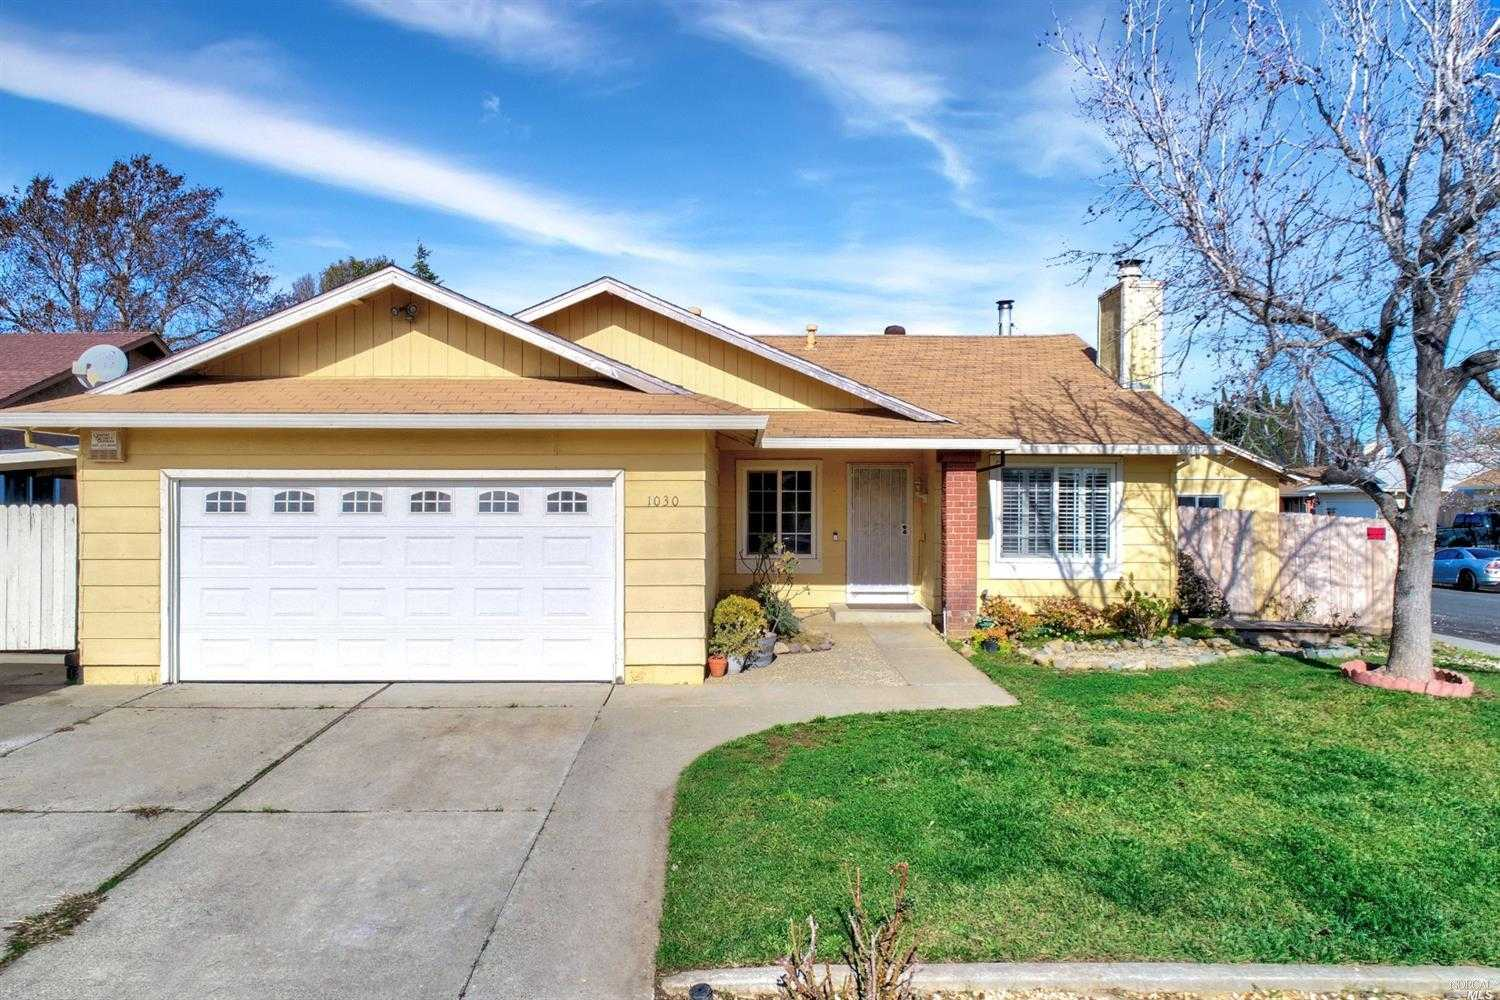 $390,000 - 4Br/2Ba -  for Sale in Suisun City